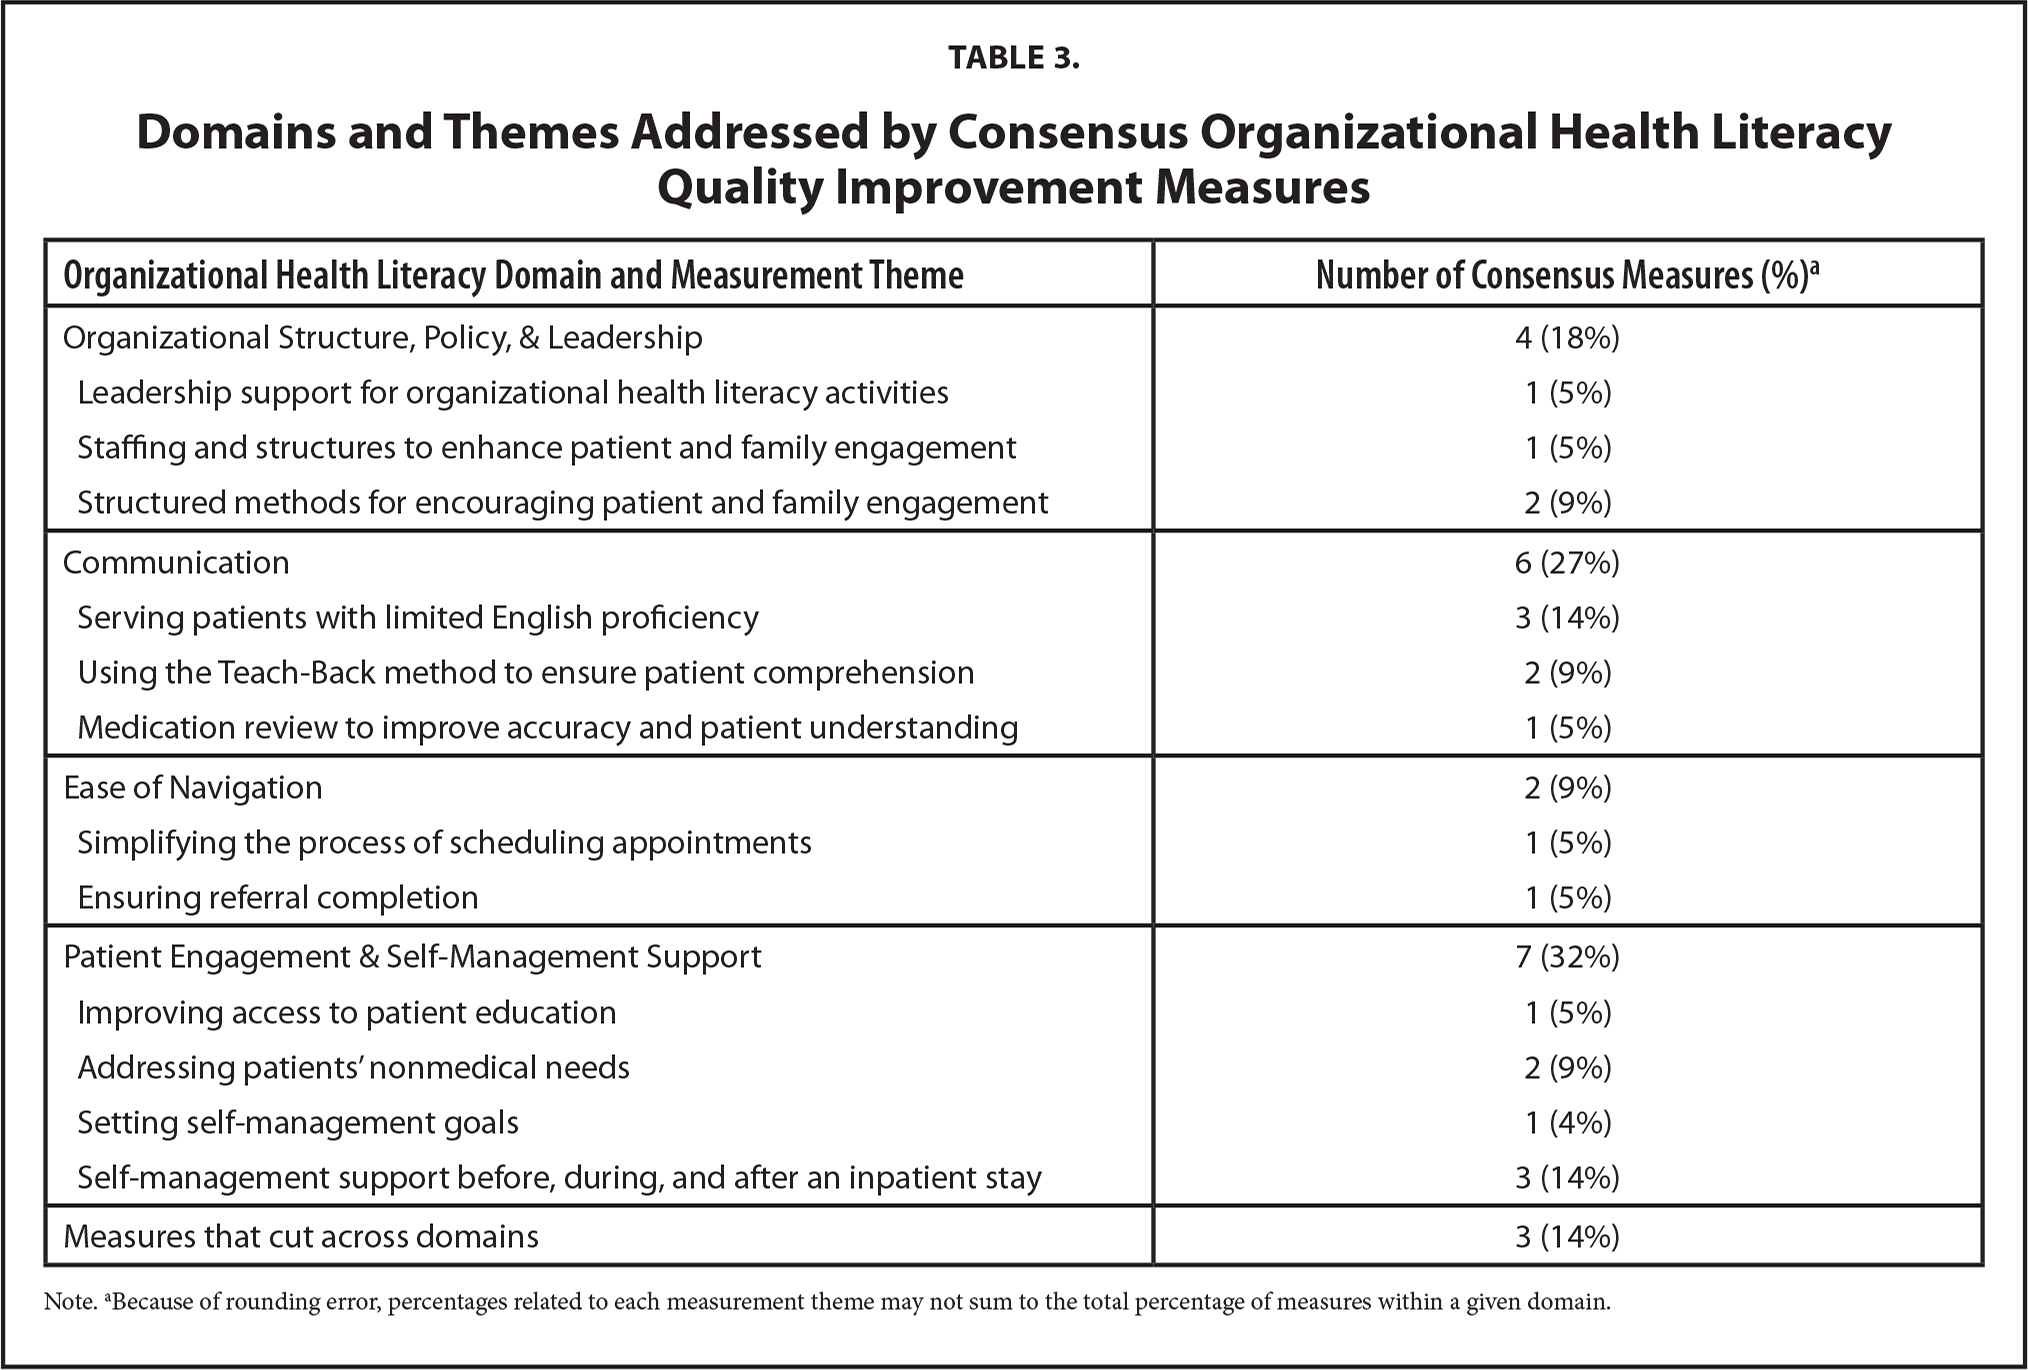 Domains and Themes Addressed by Consensus Organizational Health Literacy Quality Improvement Measures